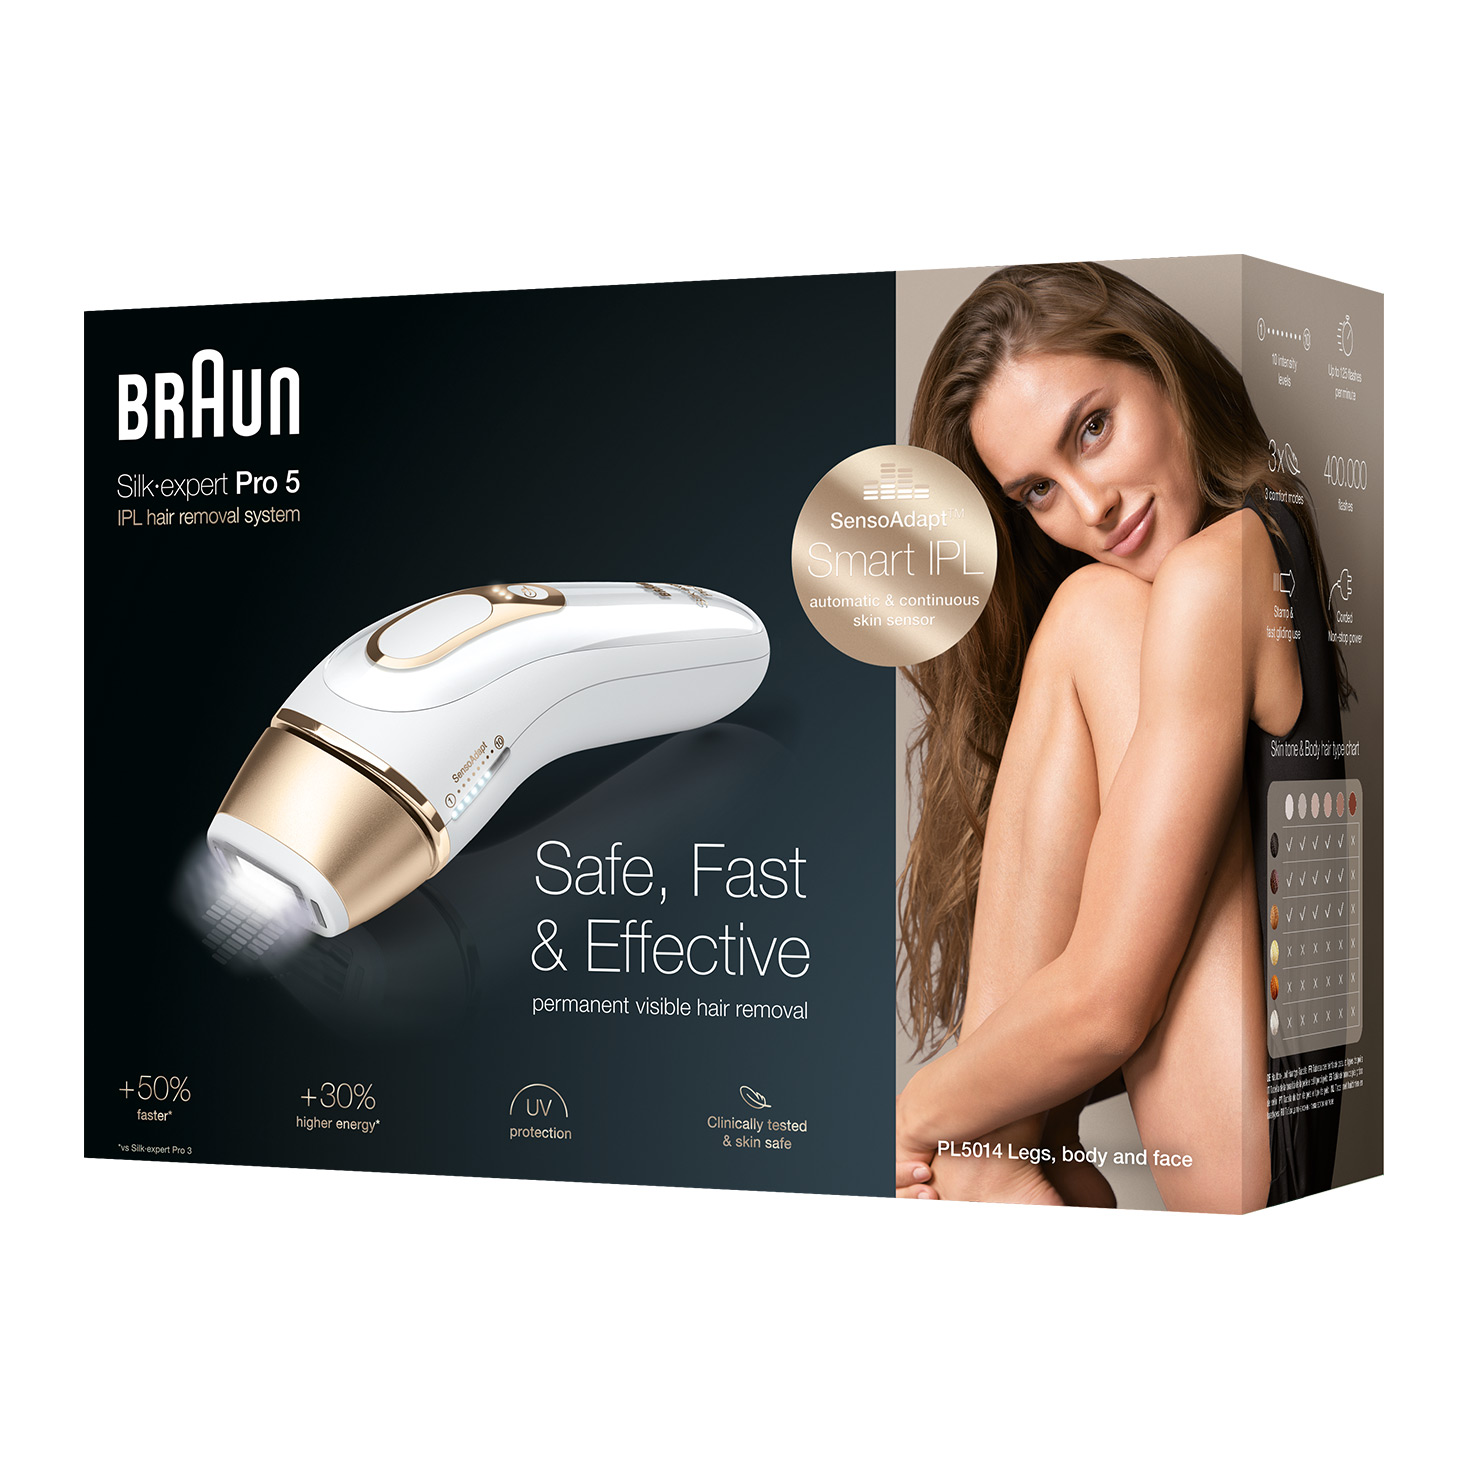 Braun Silk-expert Pro 5 PL5014 - Packaging